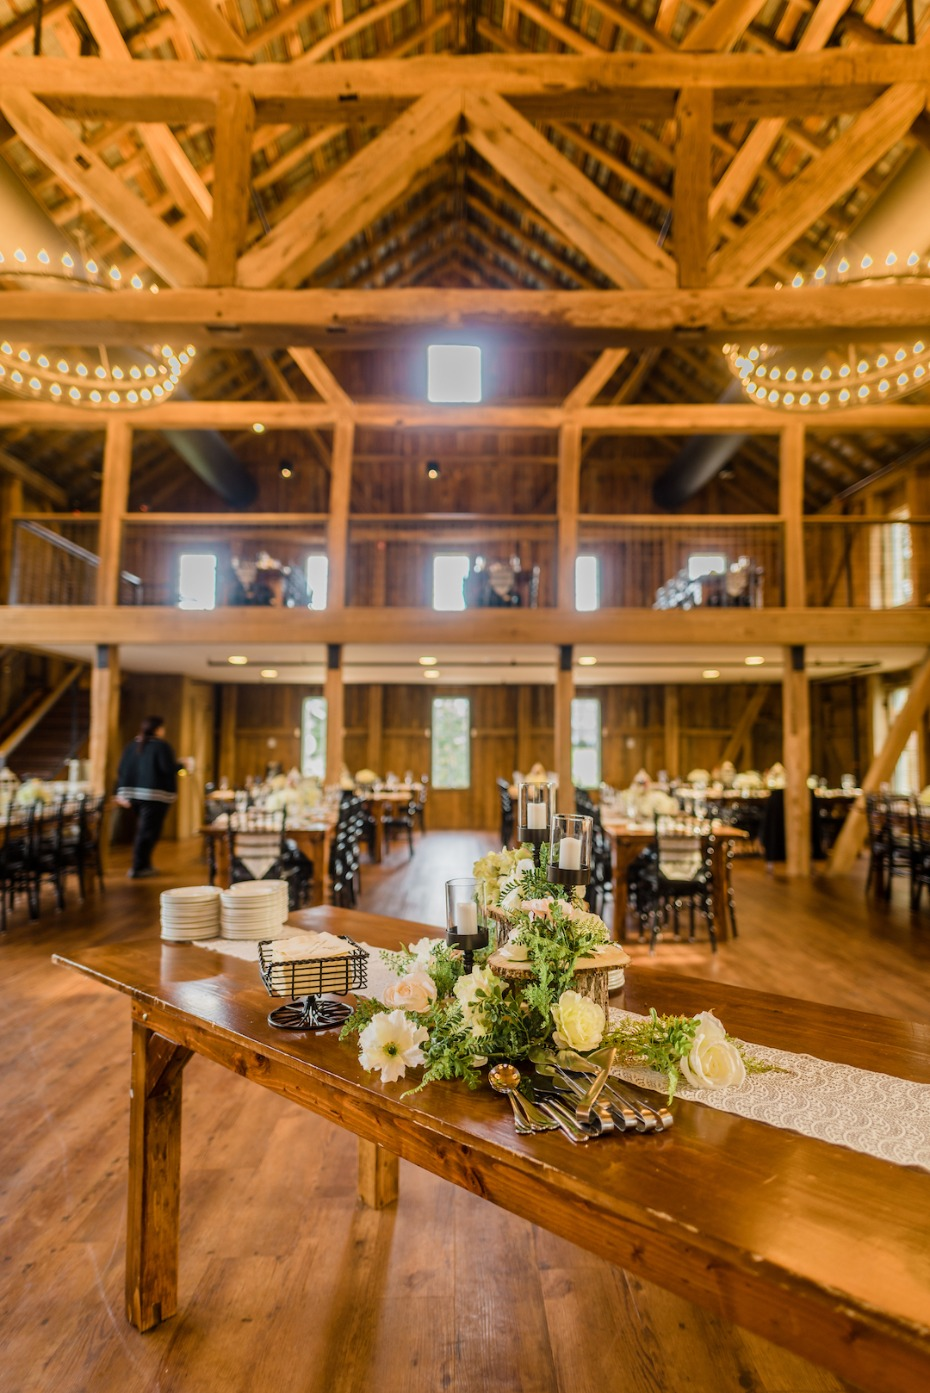 Giant barn reception space